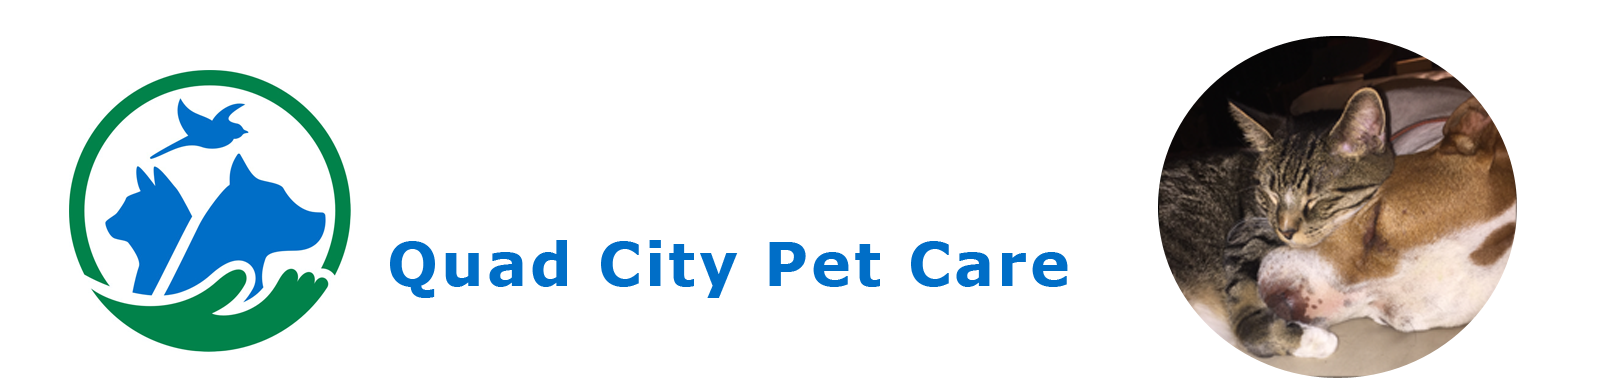 Banner graphic with a photo of a cute puppy, the QC Pet Care logo that shows a hand holding a dog, cat, and bird, and text that says Quad City Pet Care